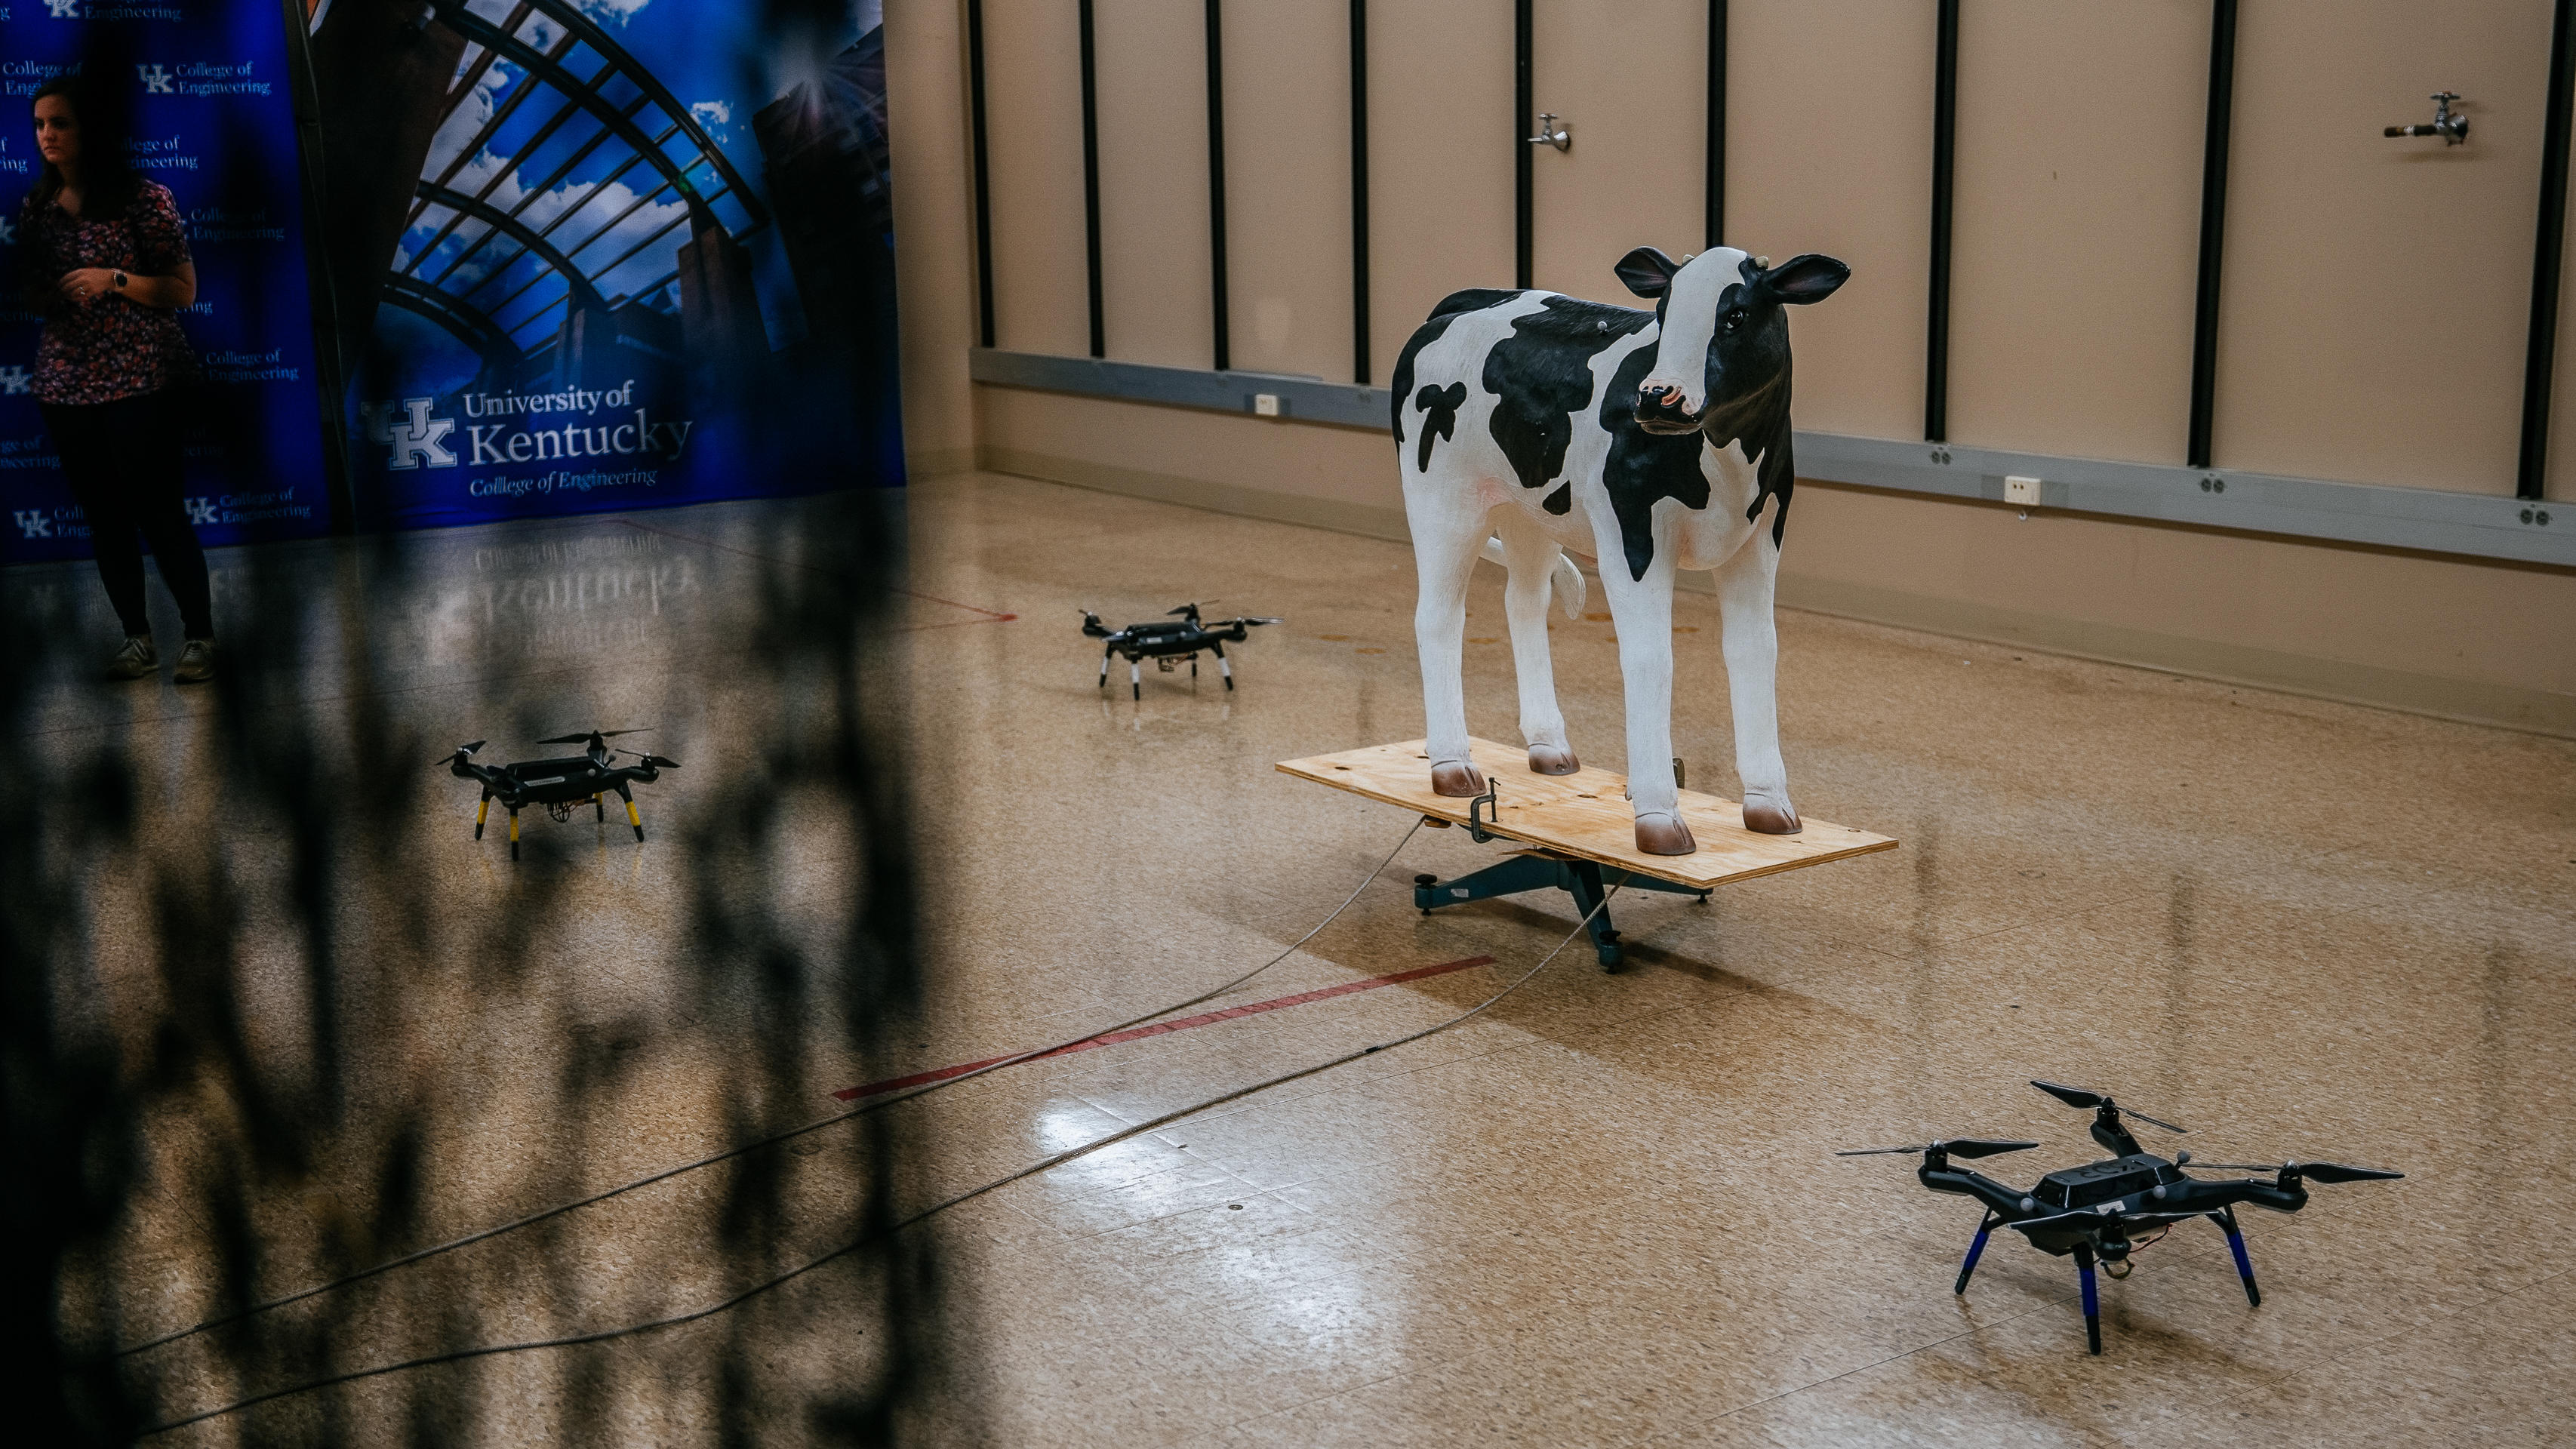 cattle-drones-4